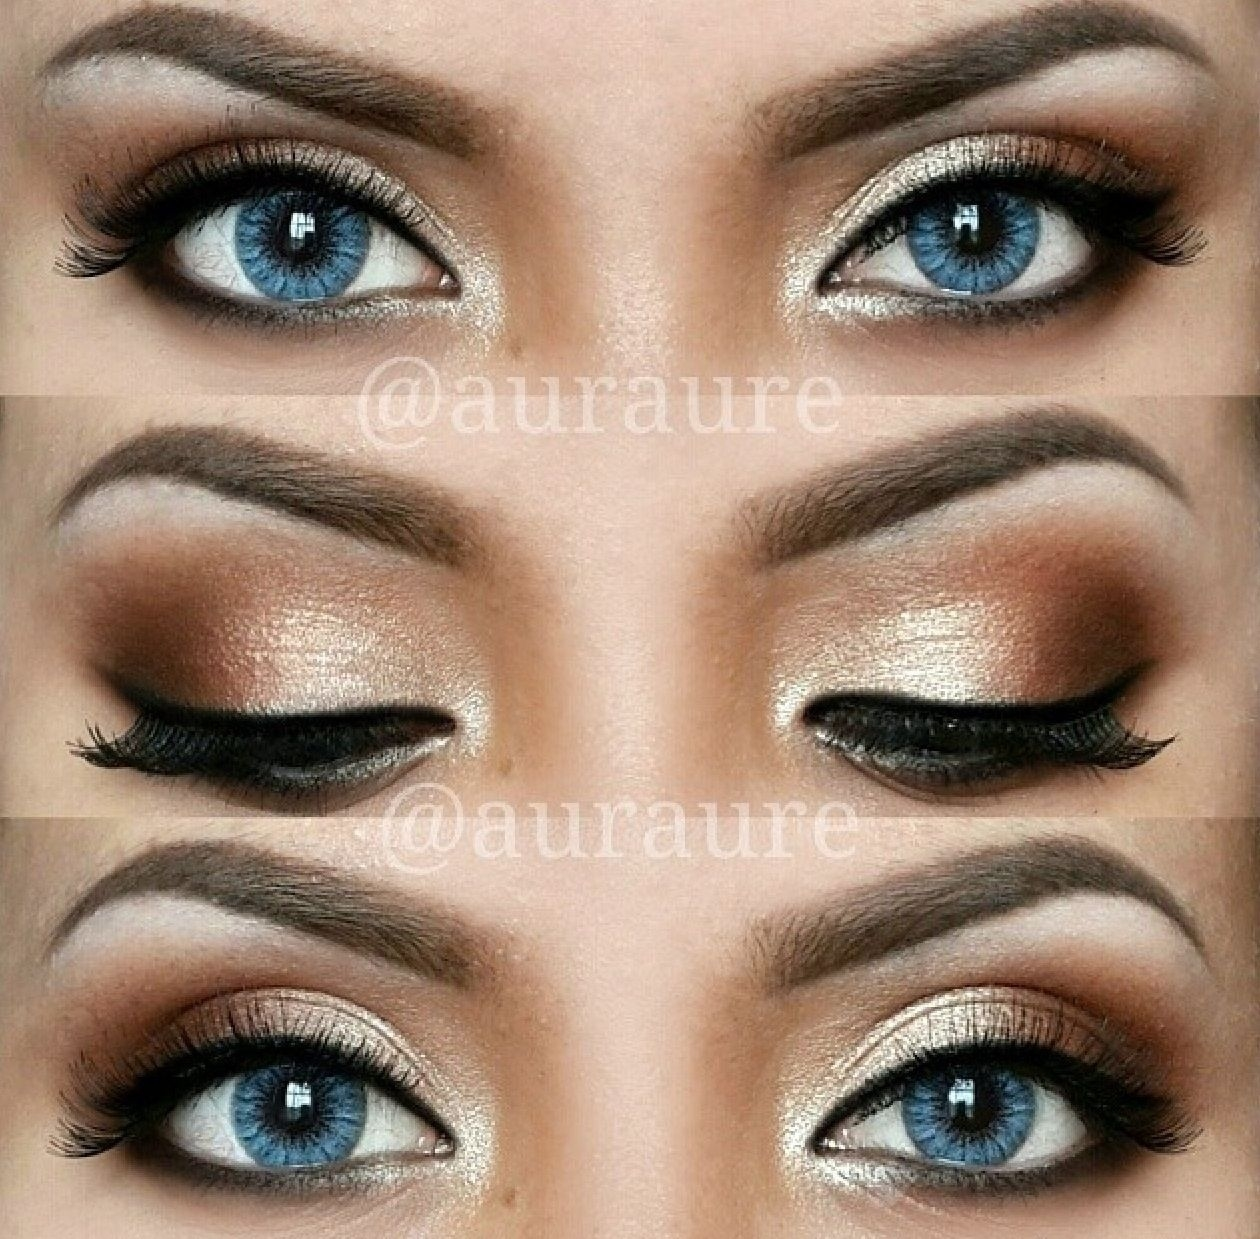 12 Easy Ideas For Prom Makeup For Blue Eyes | Hair And Makeup with Makeup Ideas For Blue Eyes